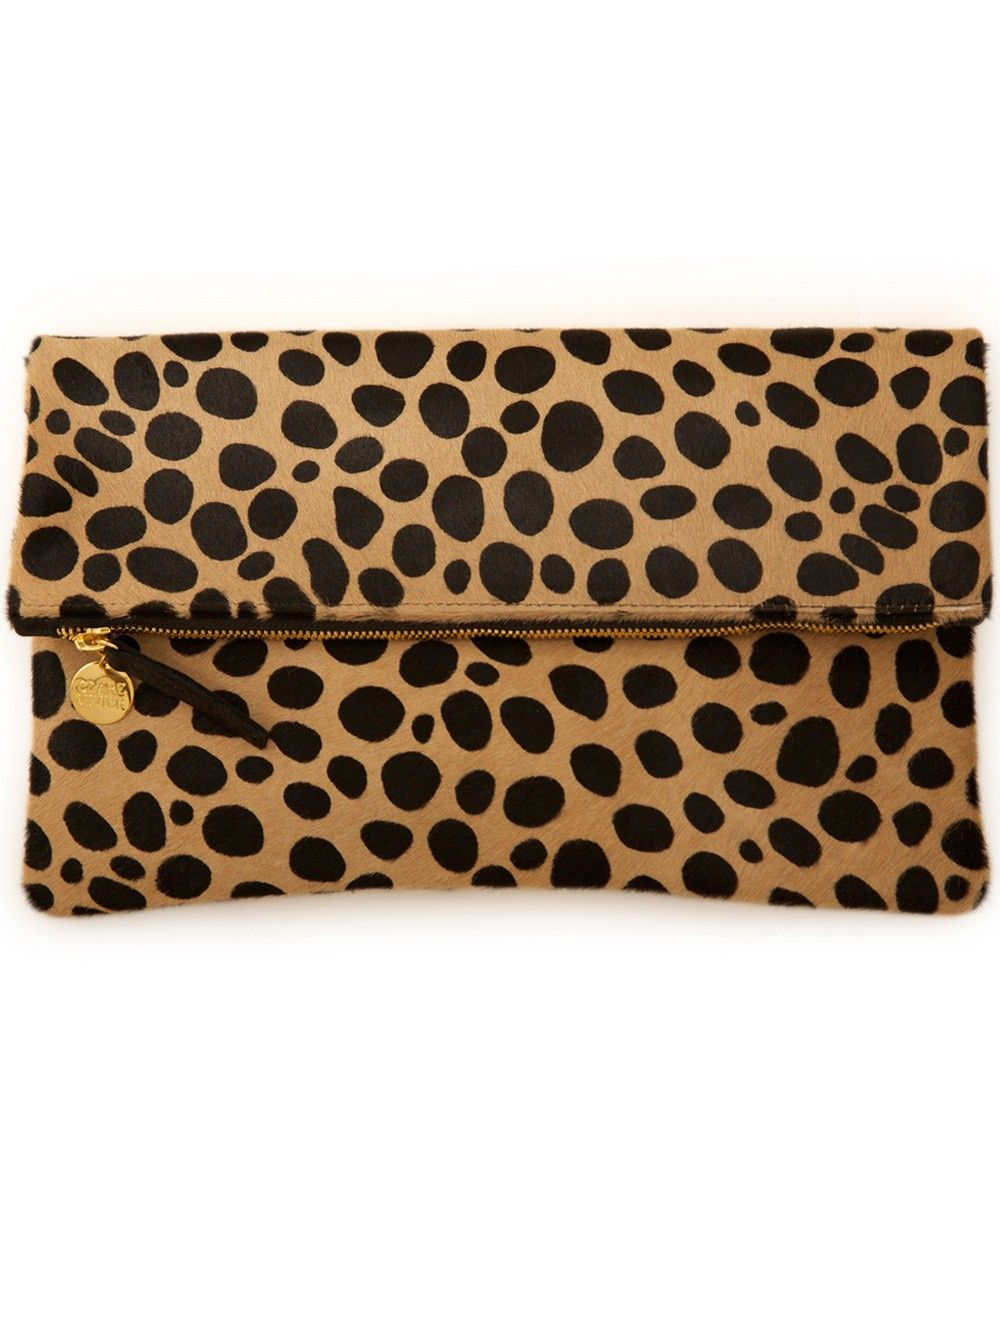 db66ac591 Clare Vivier Leopard Print Fold Over Clutch | BAGS & ACCESSORIES ...